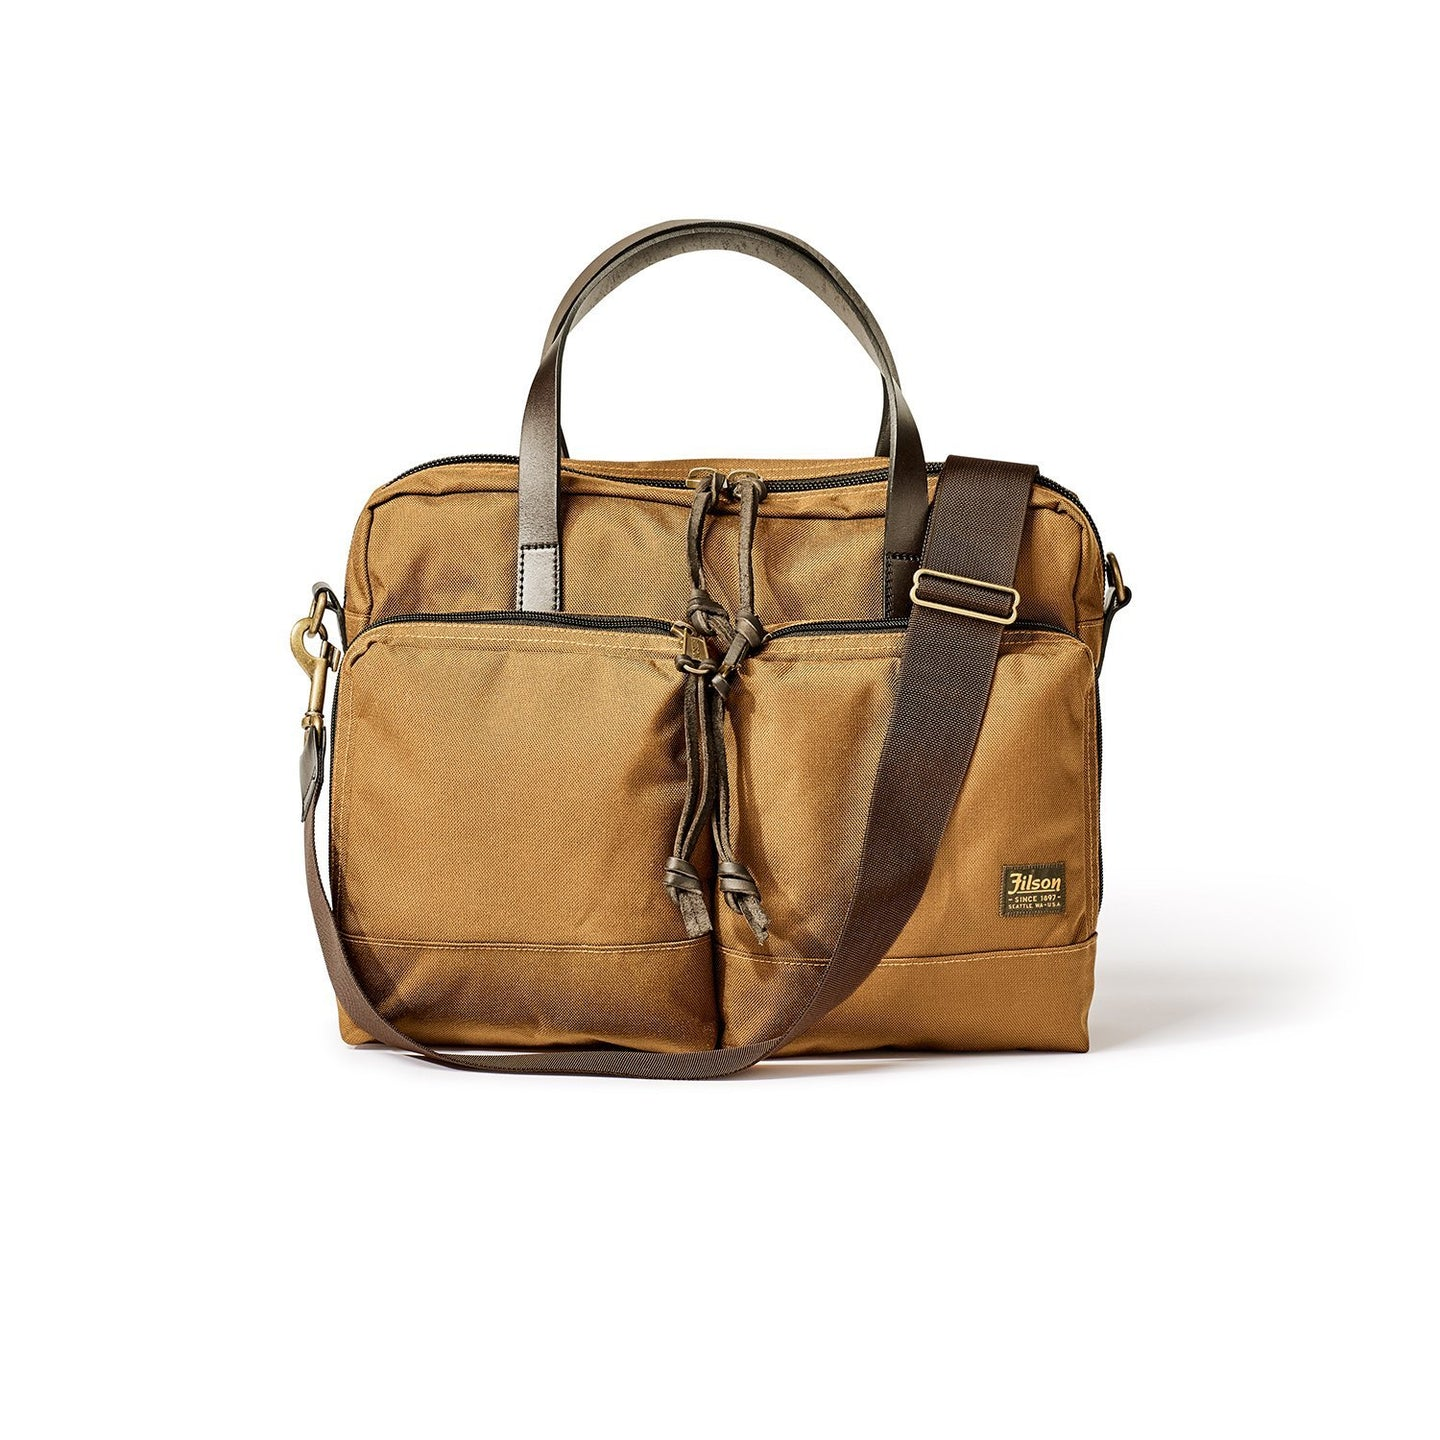 Filson ACCESSORIES - TRAVEL - DUFFEL BAG Filson, Dryden Briefcase, Whiskey